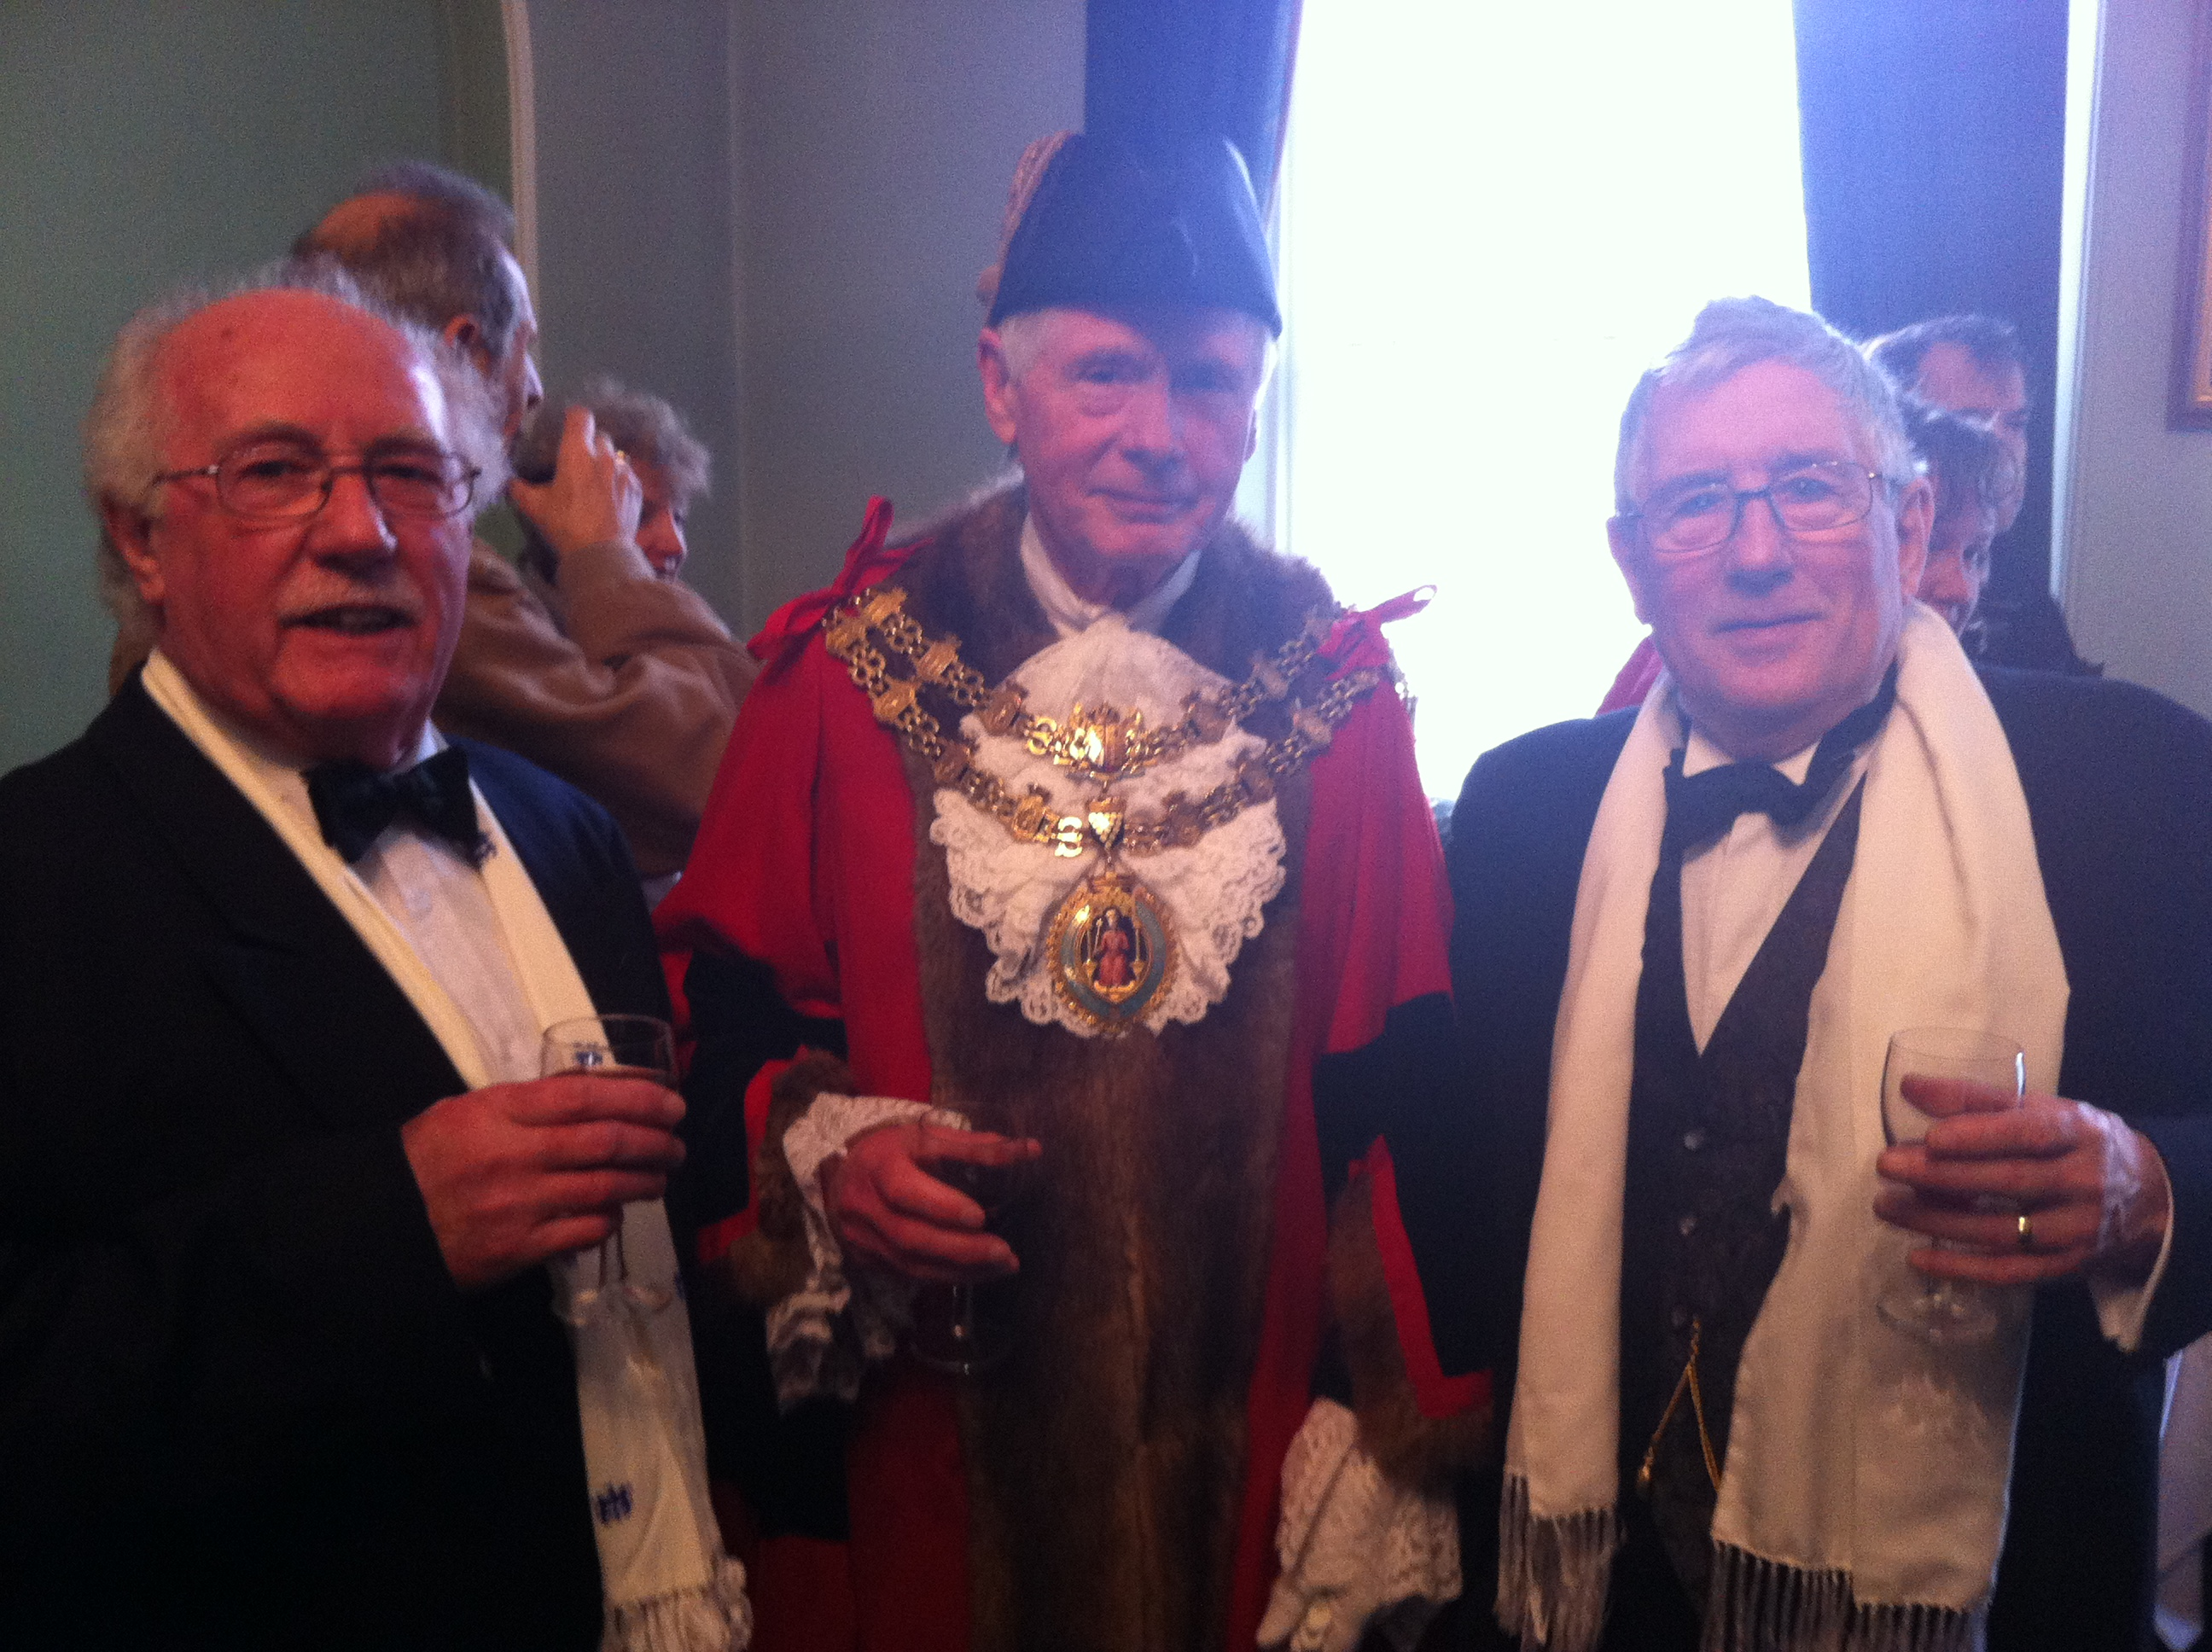 Vic, Mayor of Bodmin, Pete